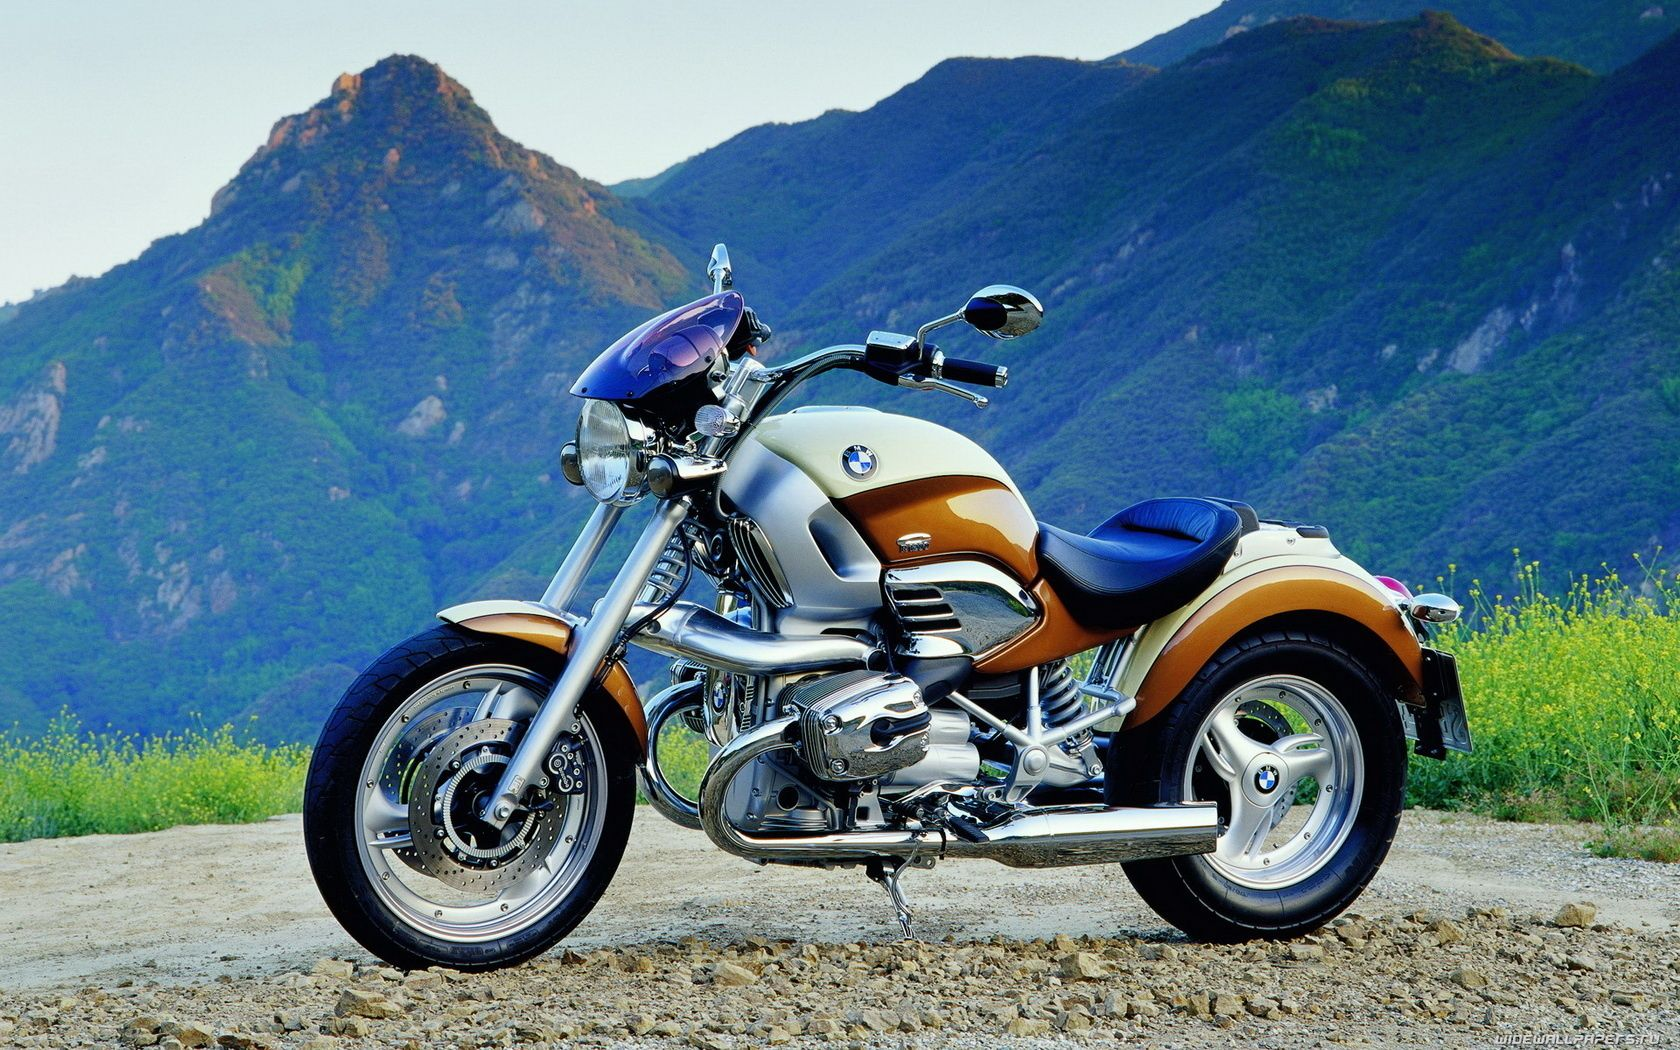 11 awesome and best bmw motorcycles pictures - | bmw motorcycles